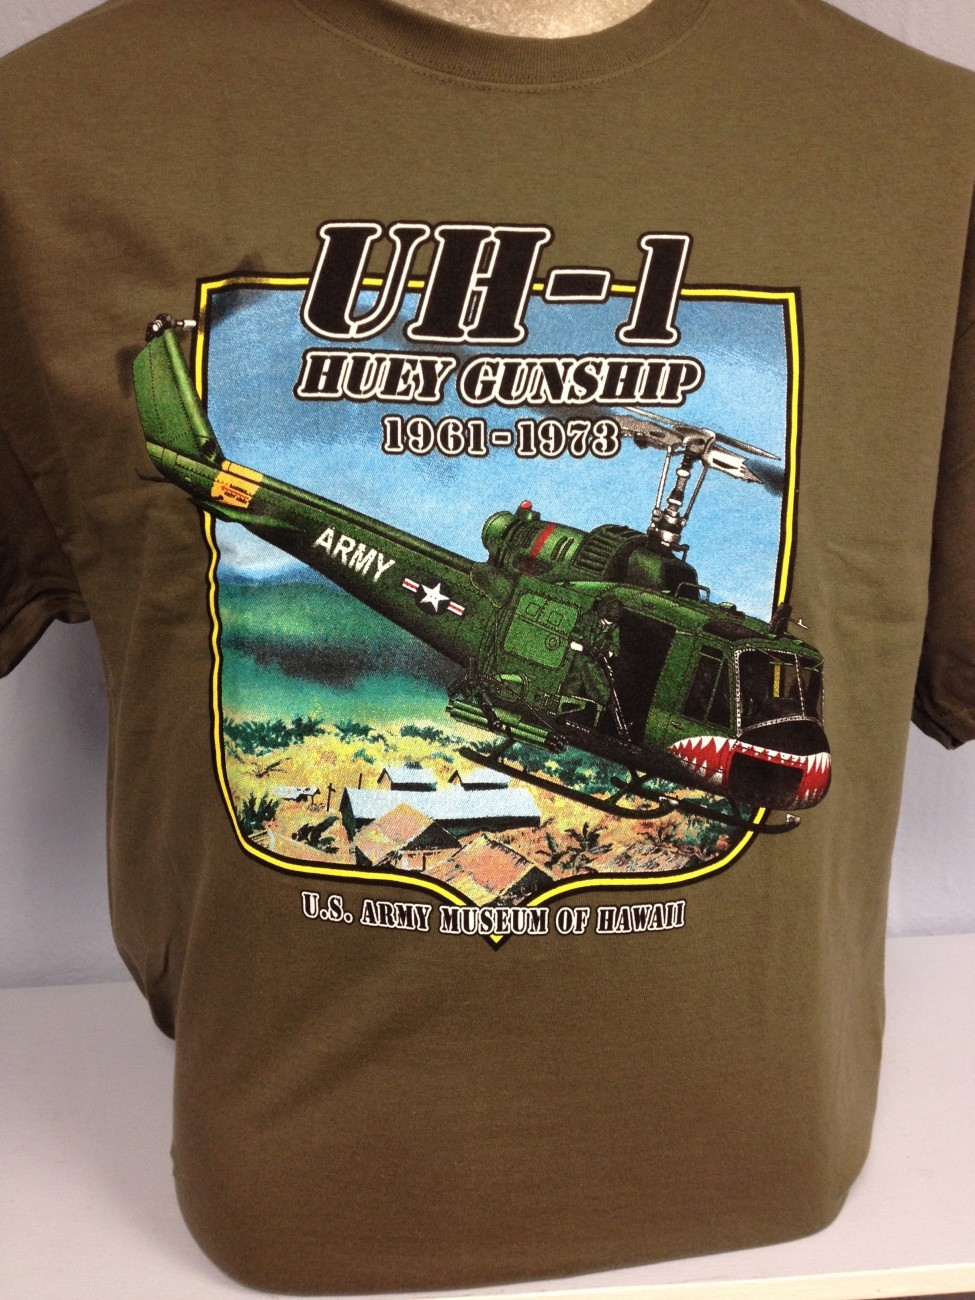 UH-1 Huey Gunship 1961-1973 T-Shirt - Adult